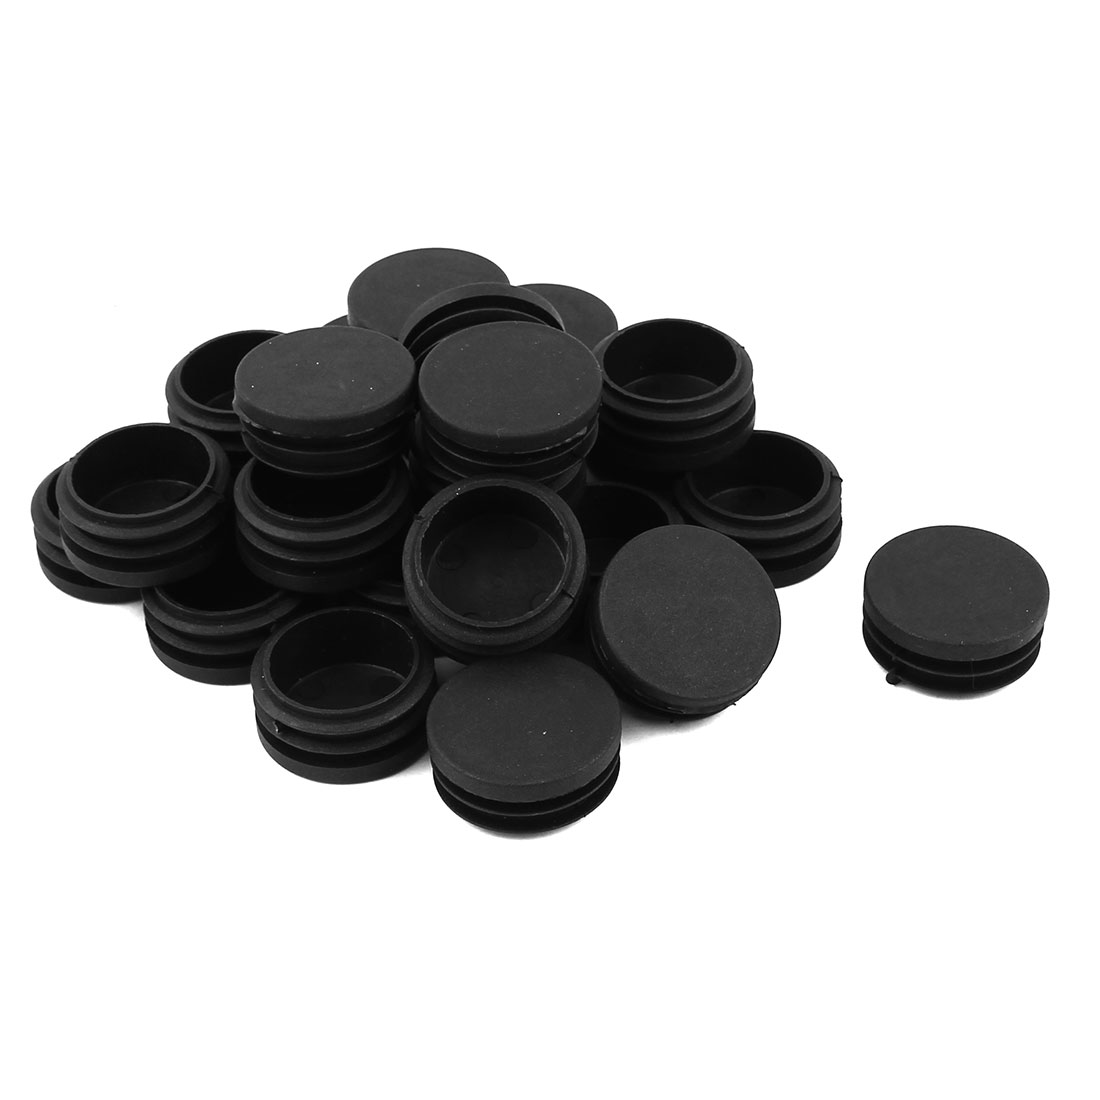 24 Pcs Black Plastic 40mm Dia Round Tubing Tube Insert Caps Covers